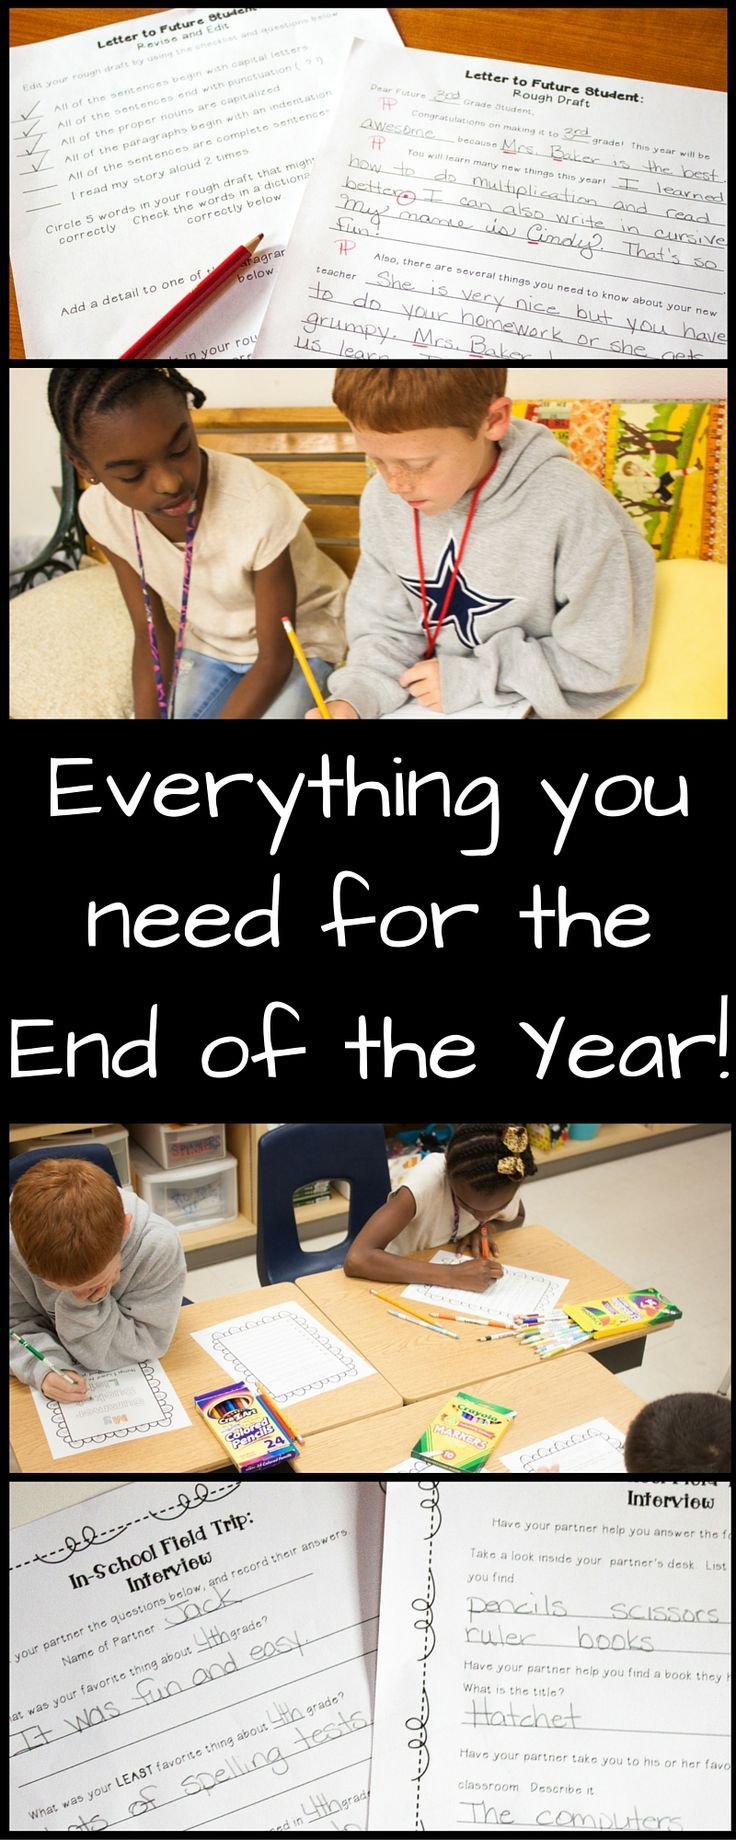 End of Year Bundle contains everything you need to make the end of the year less stressful - no prep activities, reflection questions, an end of year letter template, a summer packet, an in school field trip, and more!  $